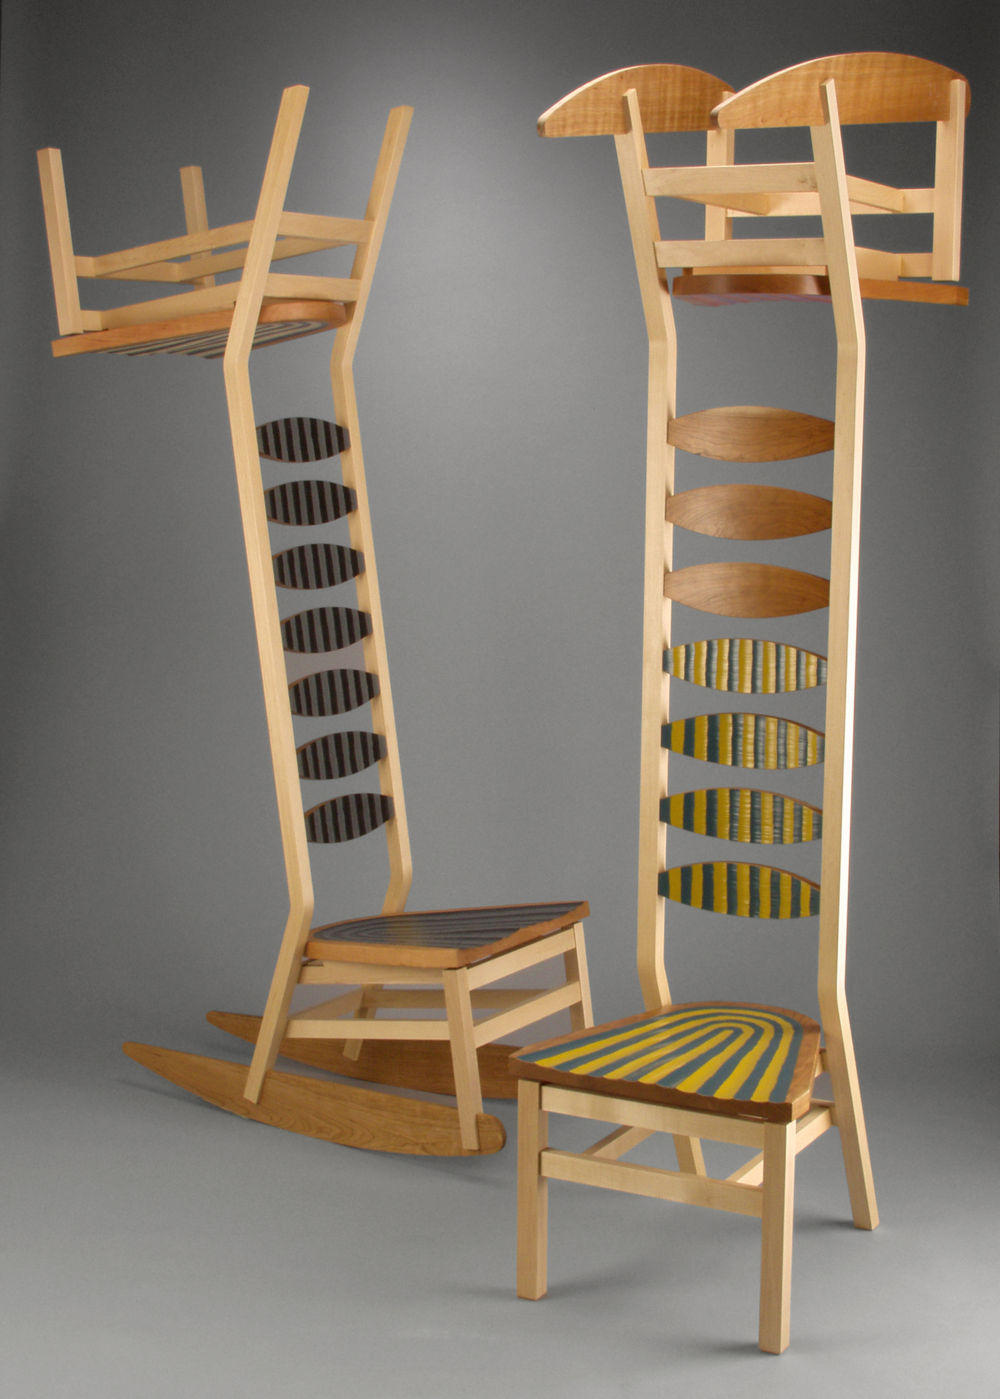 LadderbackkcabreddaL #1 and #2  |  2005  |  wood, paint  |  87 x 41 x 21